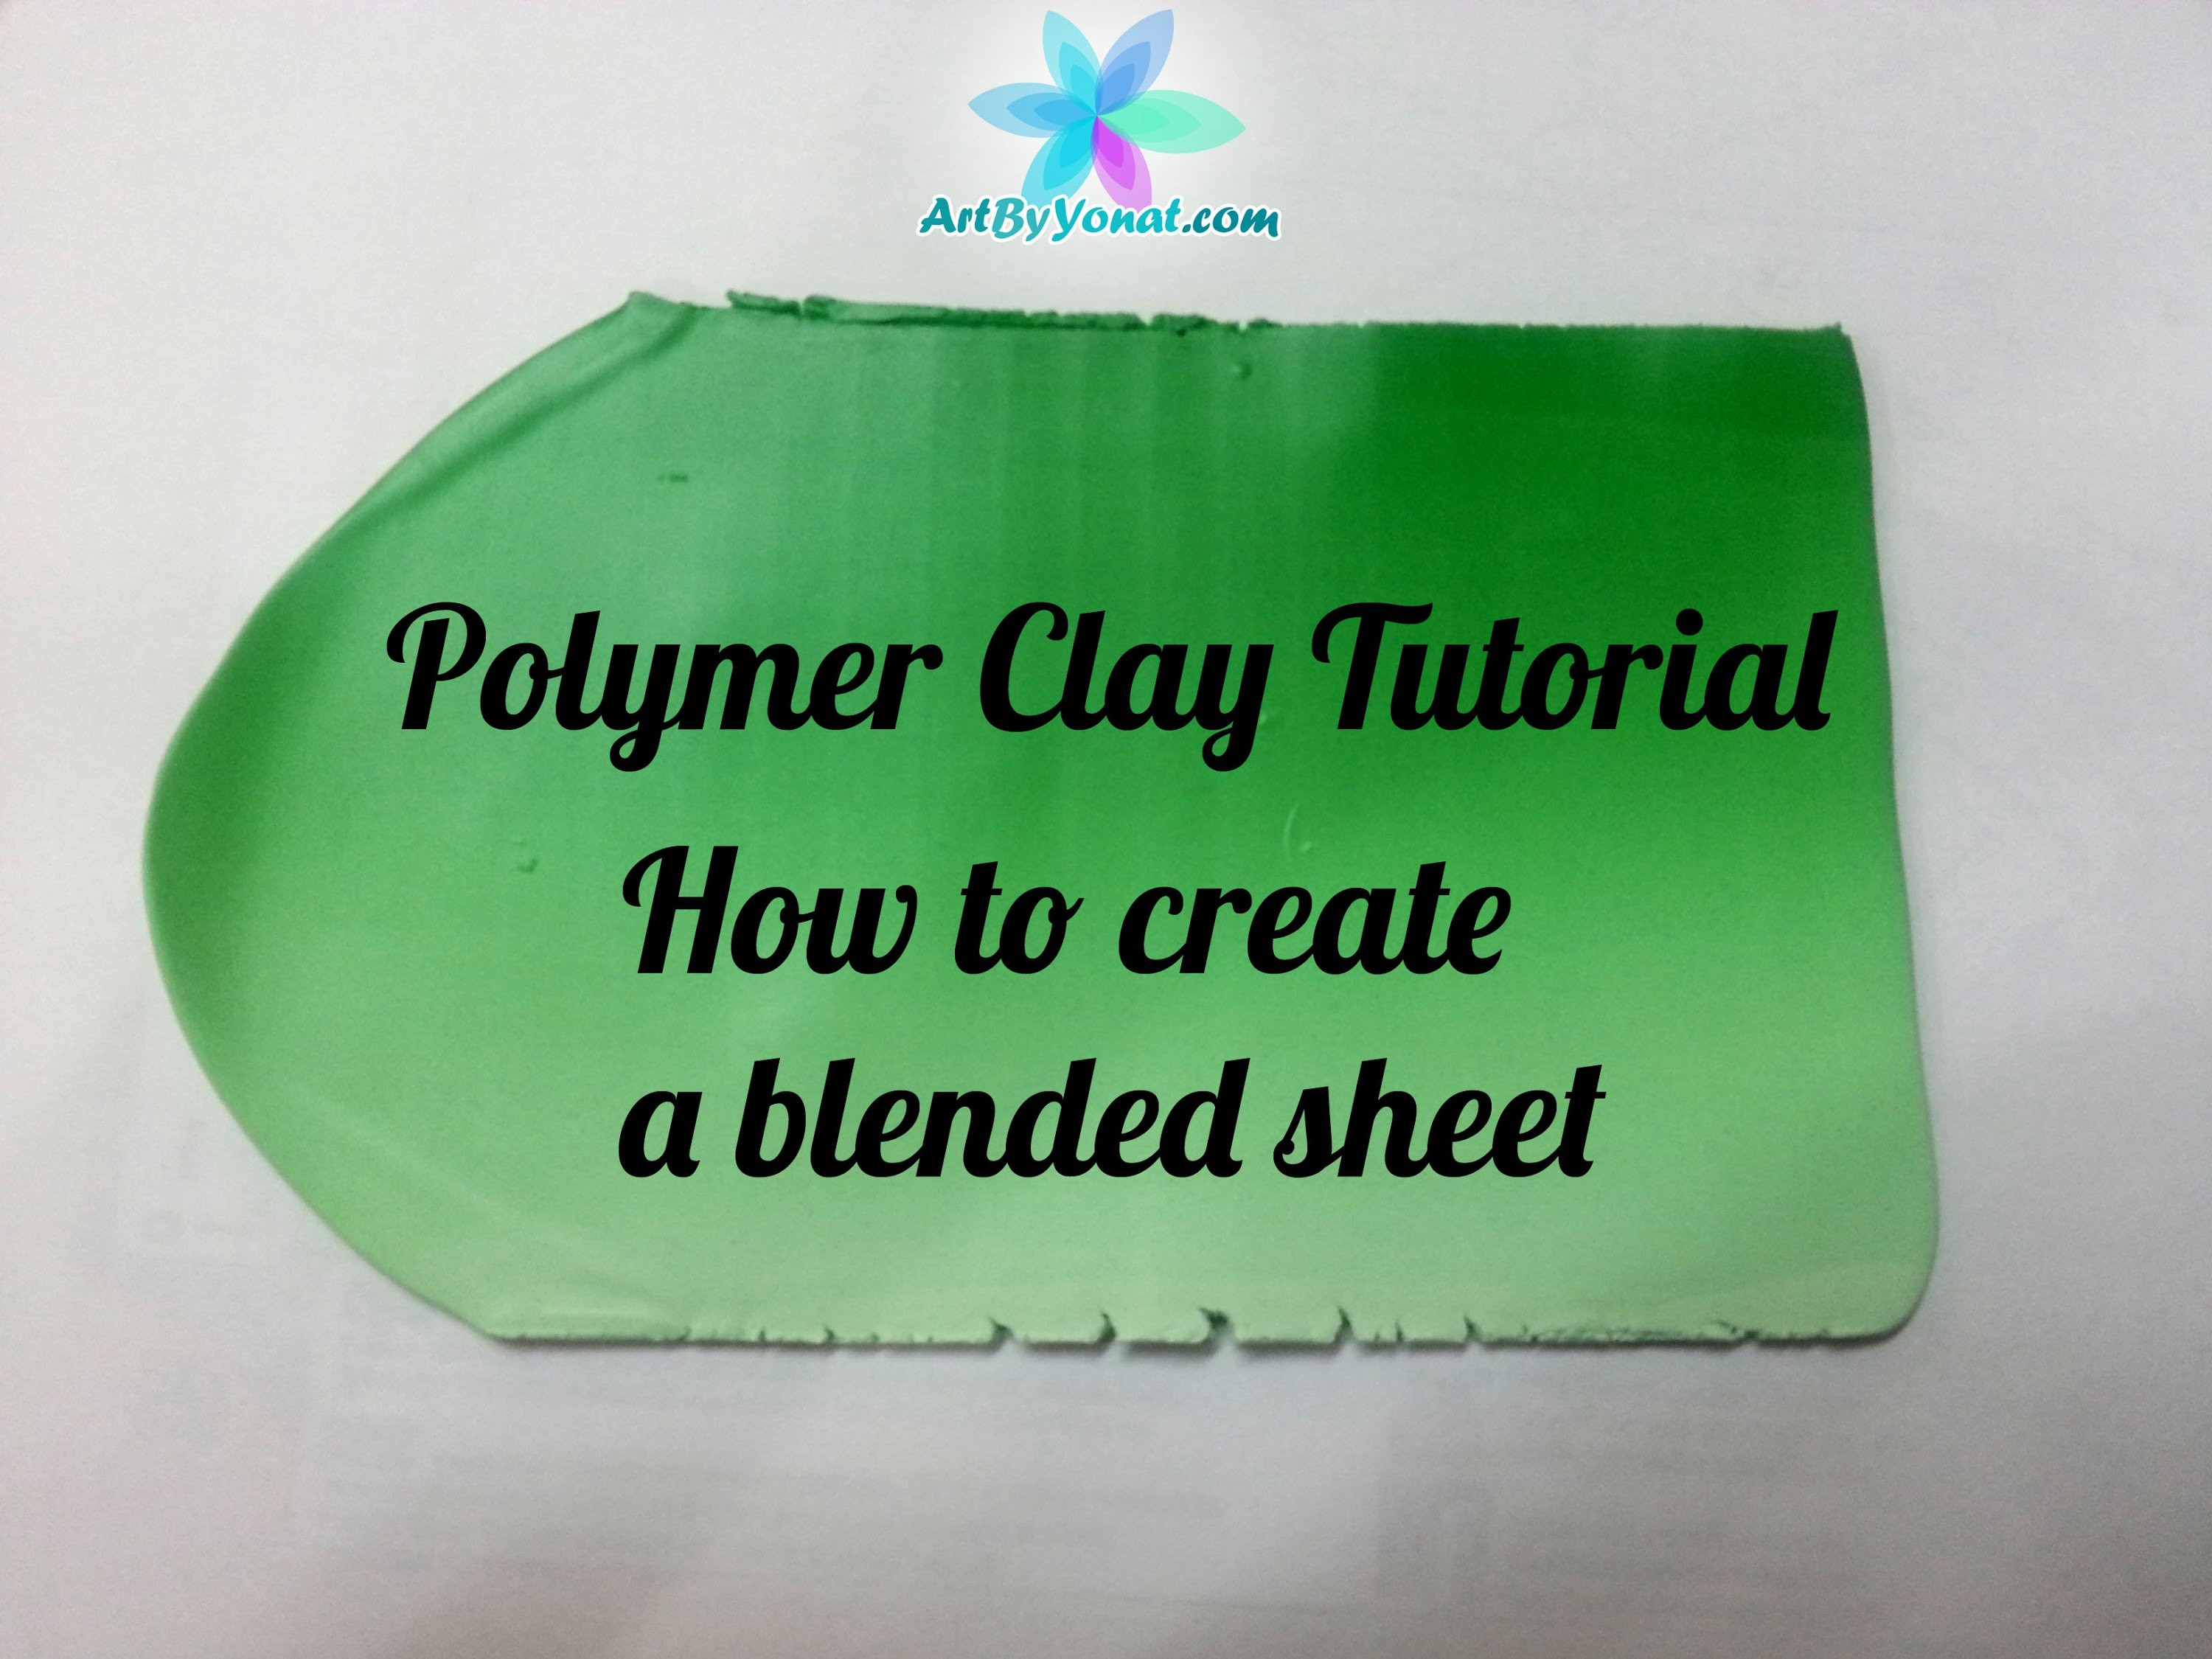 Polymer Clay Tutorial - How to Make a Blended Sheet - Lesson #1